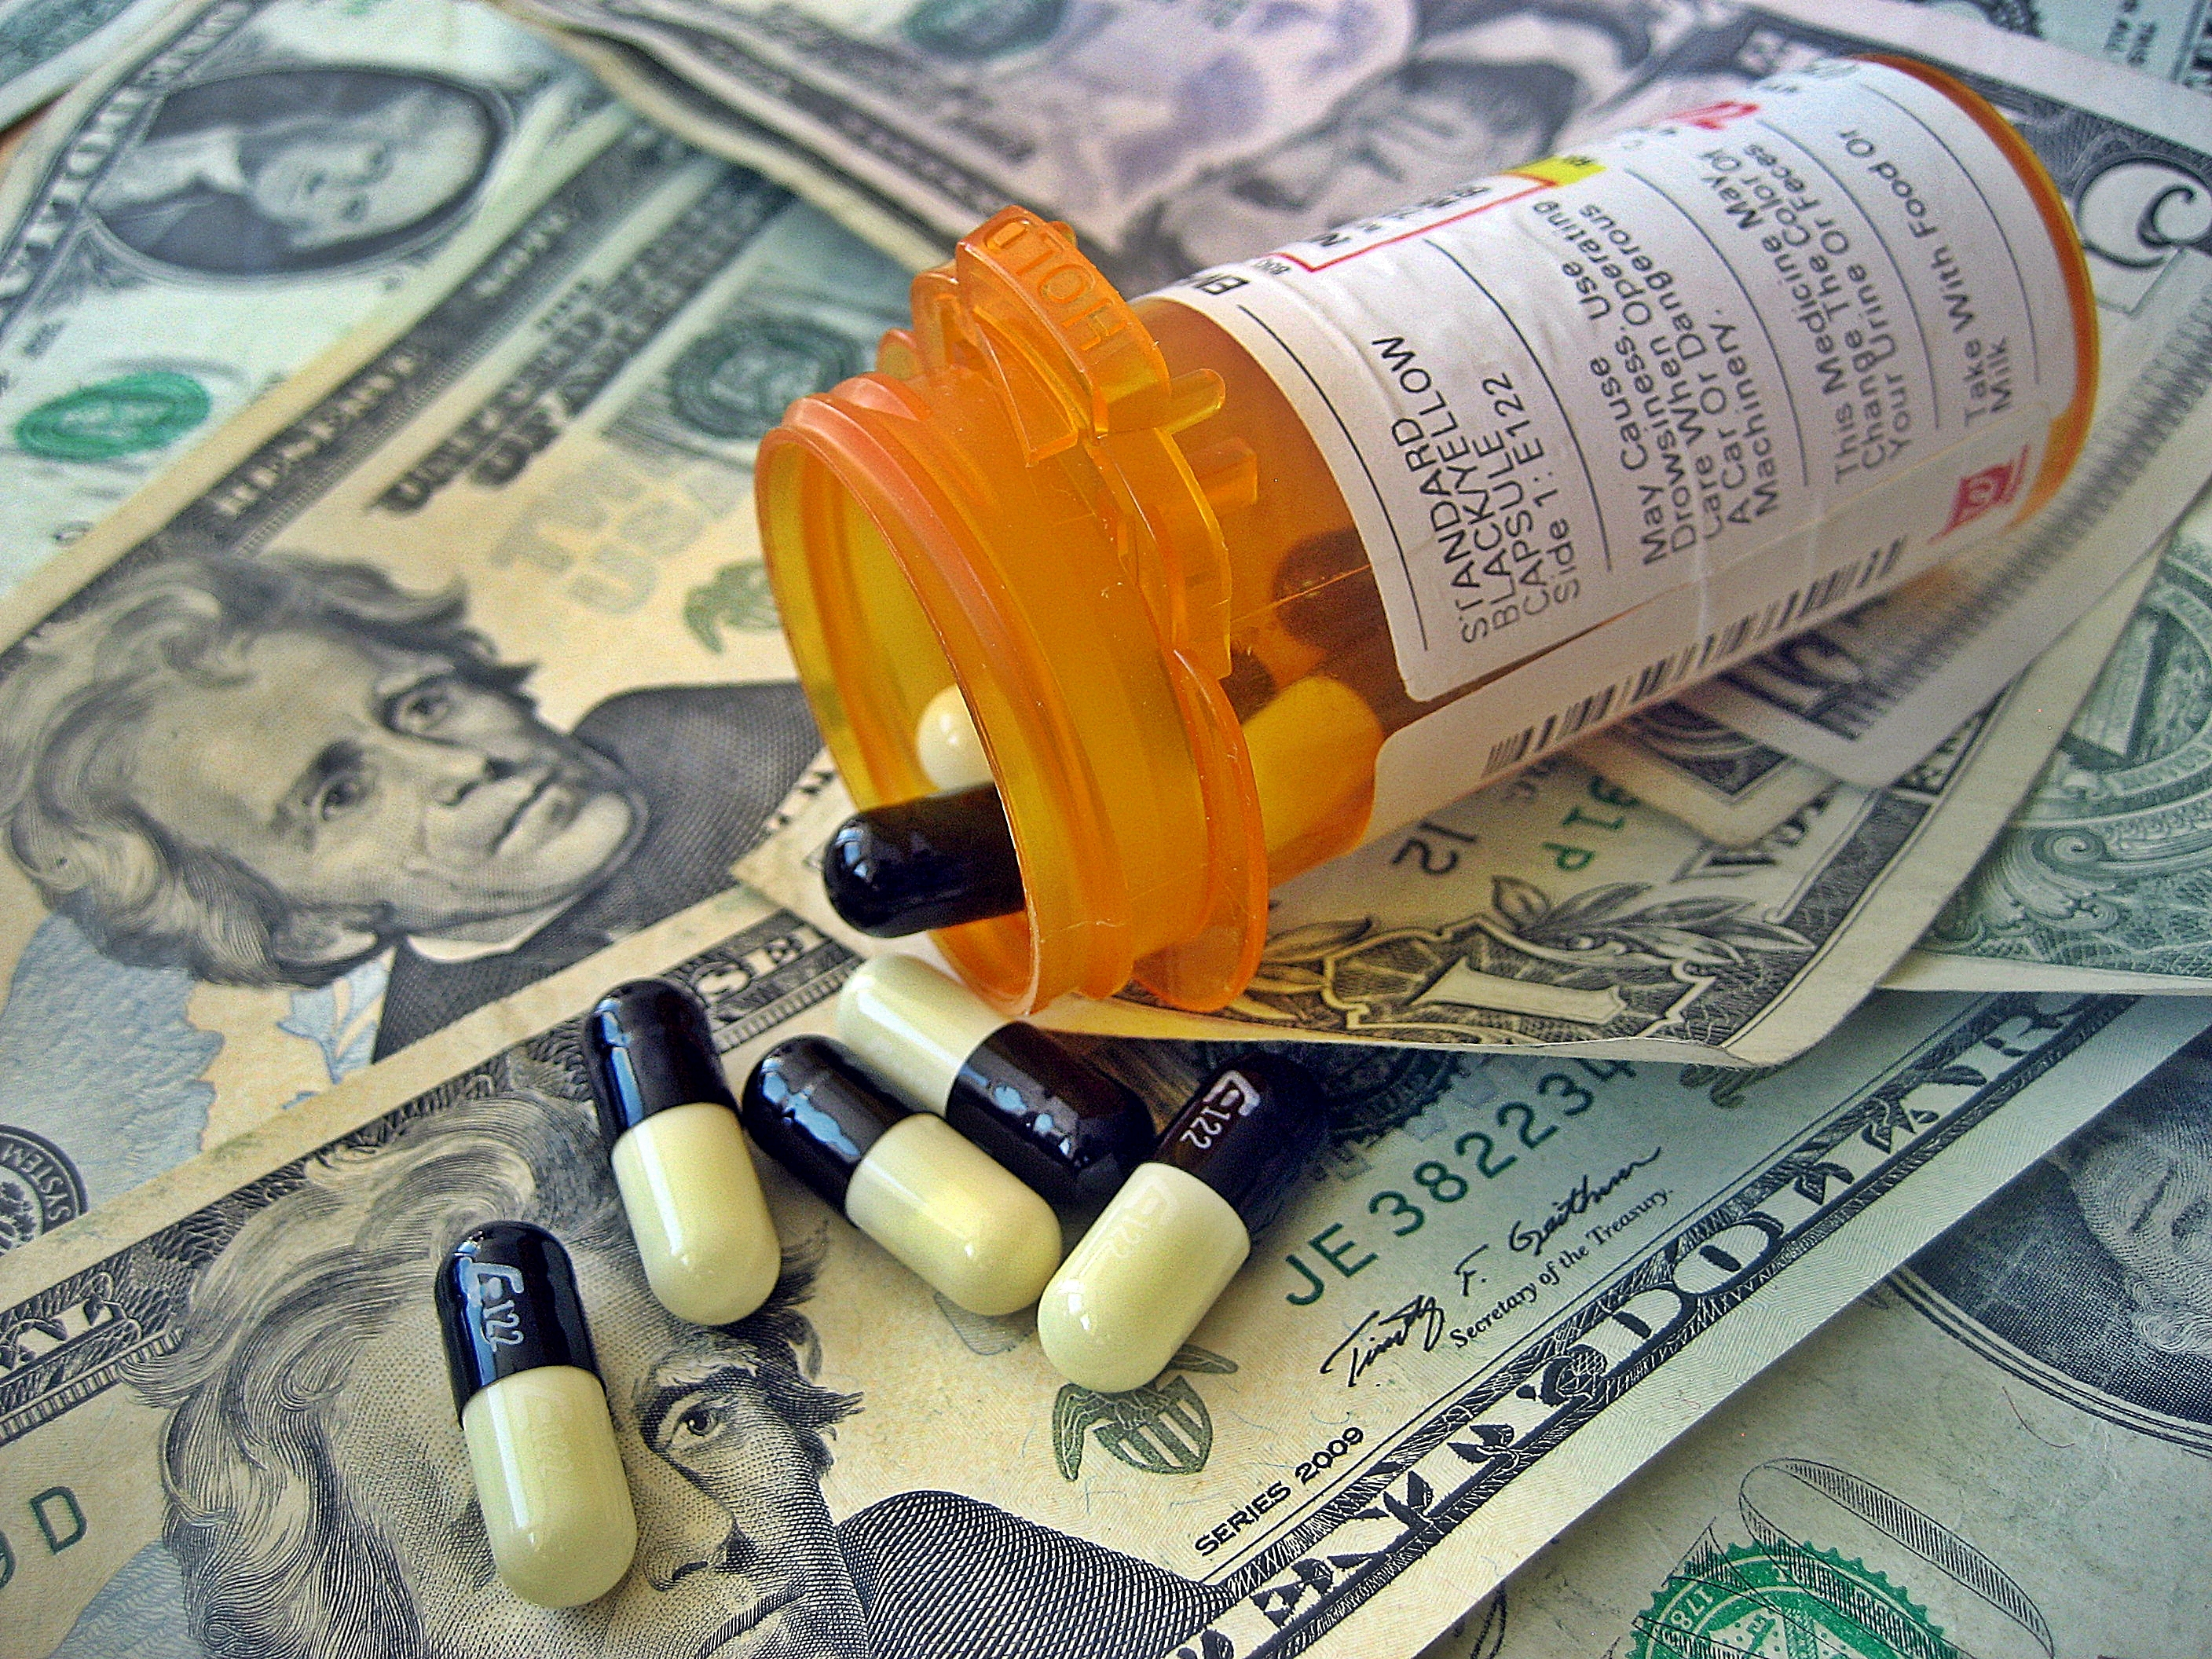 Pills and cash; photo by Tax Rebate UK via Flickr.